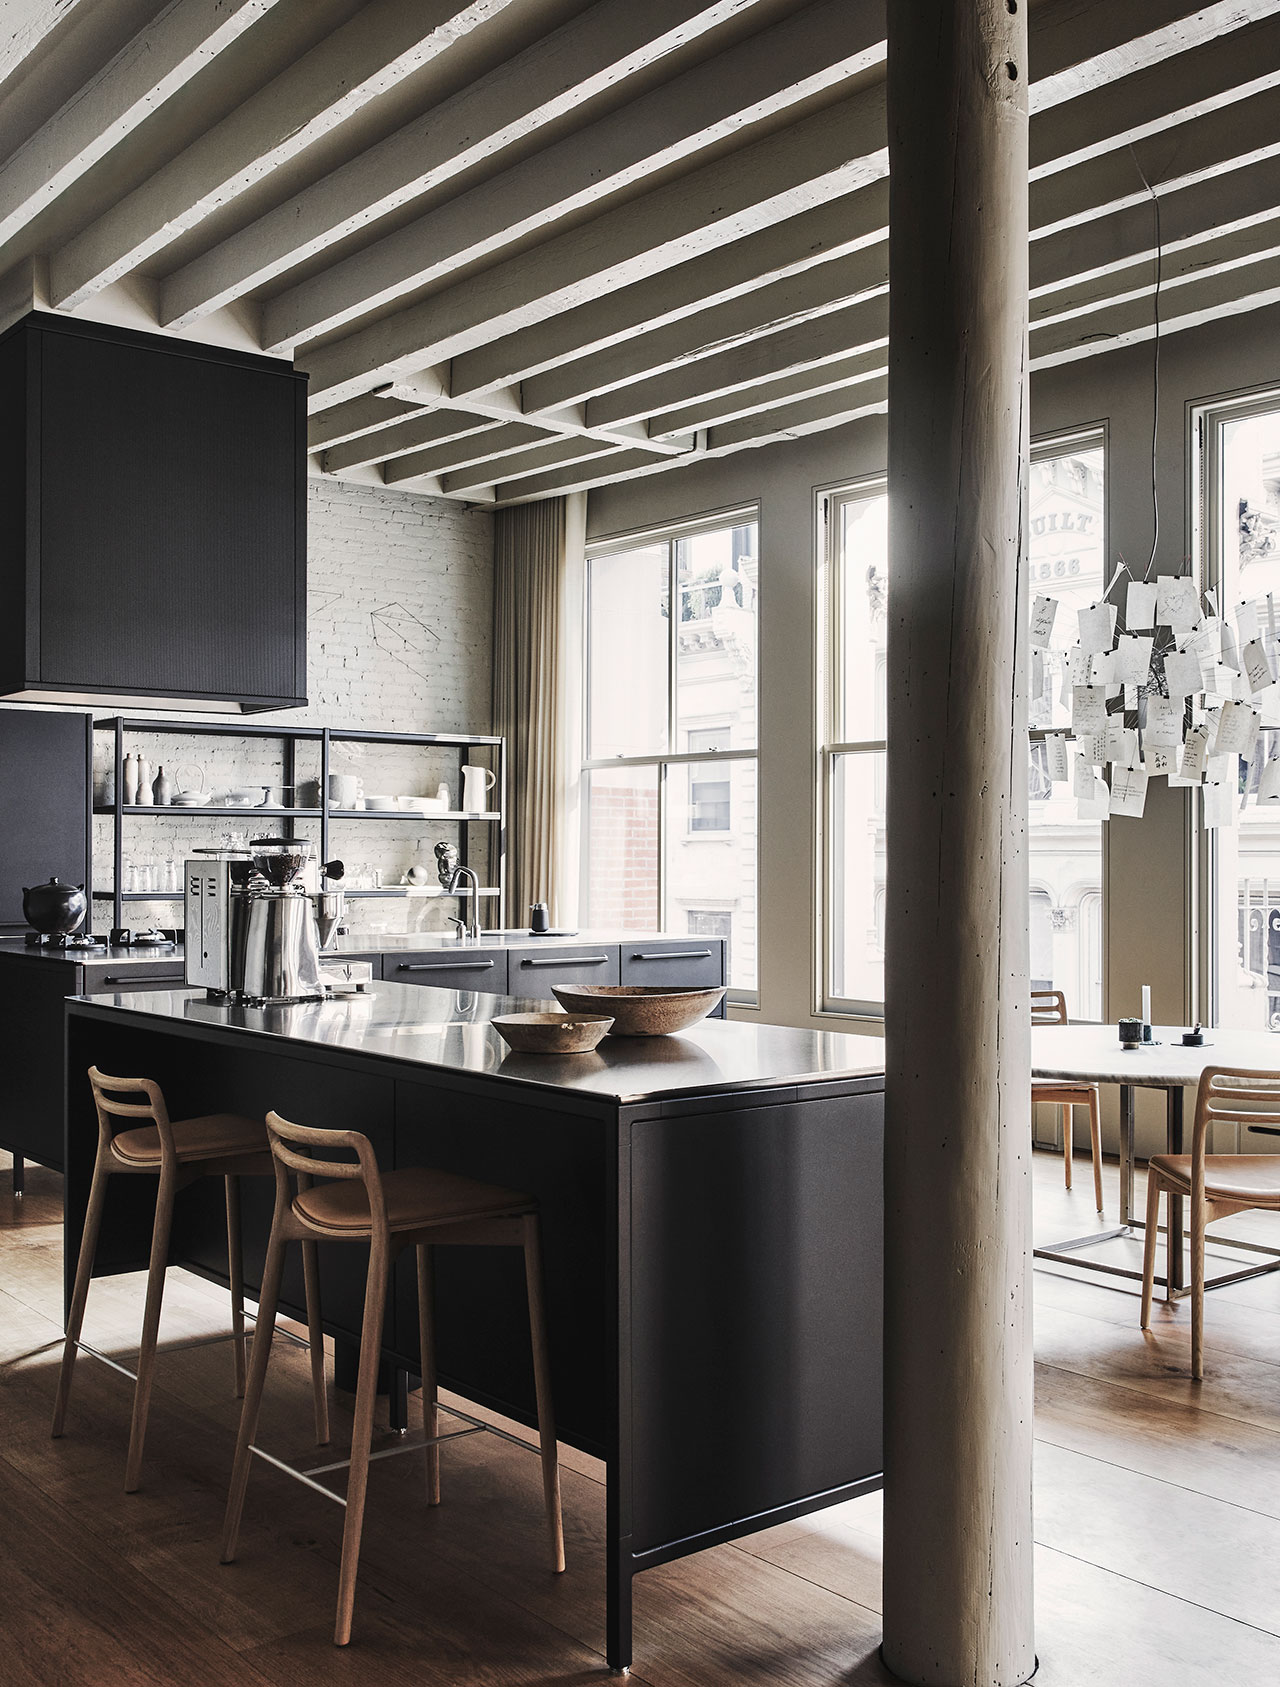 """Photography by Adrian Gaut.Styling by Colin King. © Vipp Featured:Vipp kitchen Island Module with seating, Vipp kitchen Island Module with Cooking Hood, Vipp kitchen Tall Module with appliances,Vipp Tall Racks, Custom Eric Bruce Kvadrat cotton curtains, Farrow & Ball """"Drop Cloth"""" paint."""